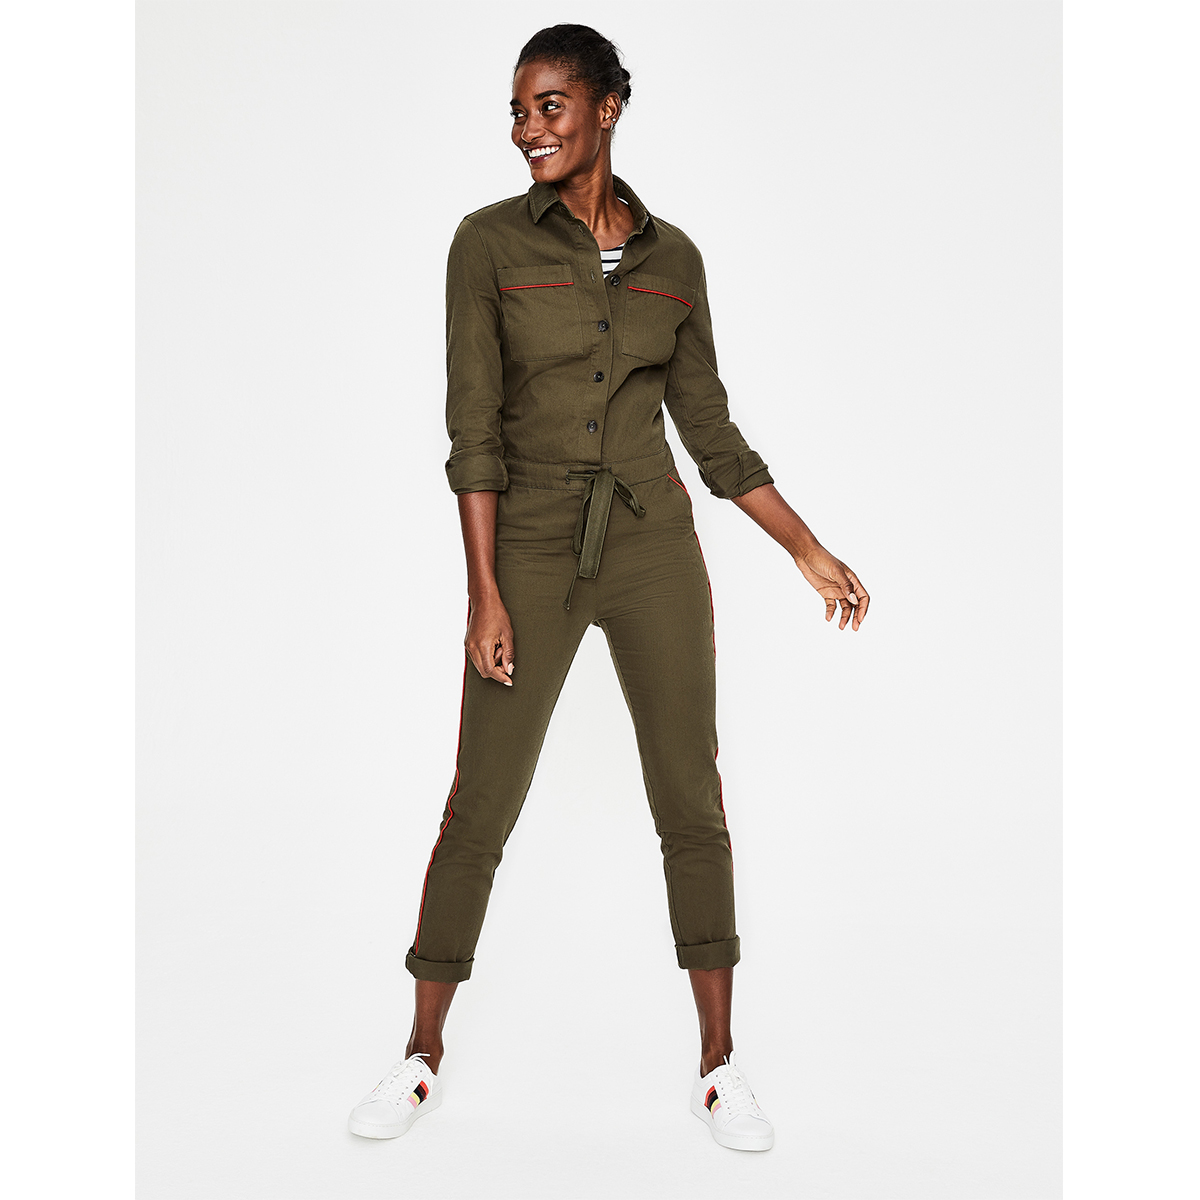 a6b0690c500 The Best Jumpsuits for Tall Women